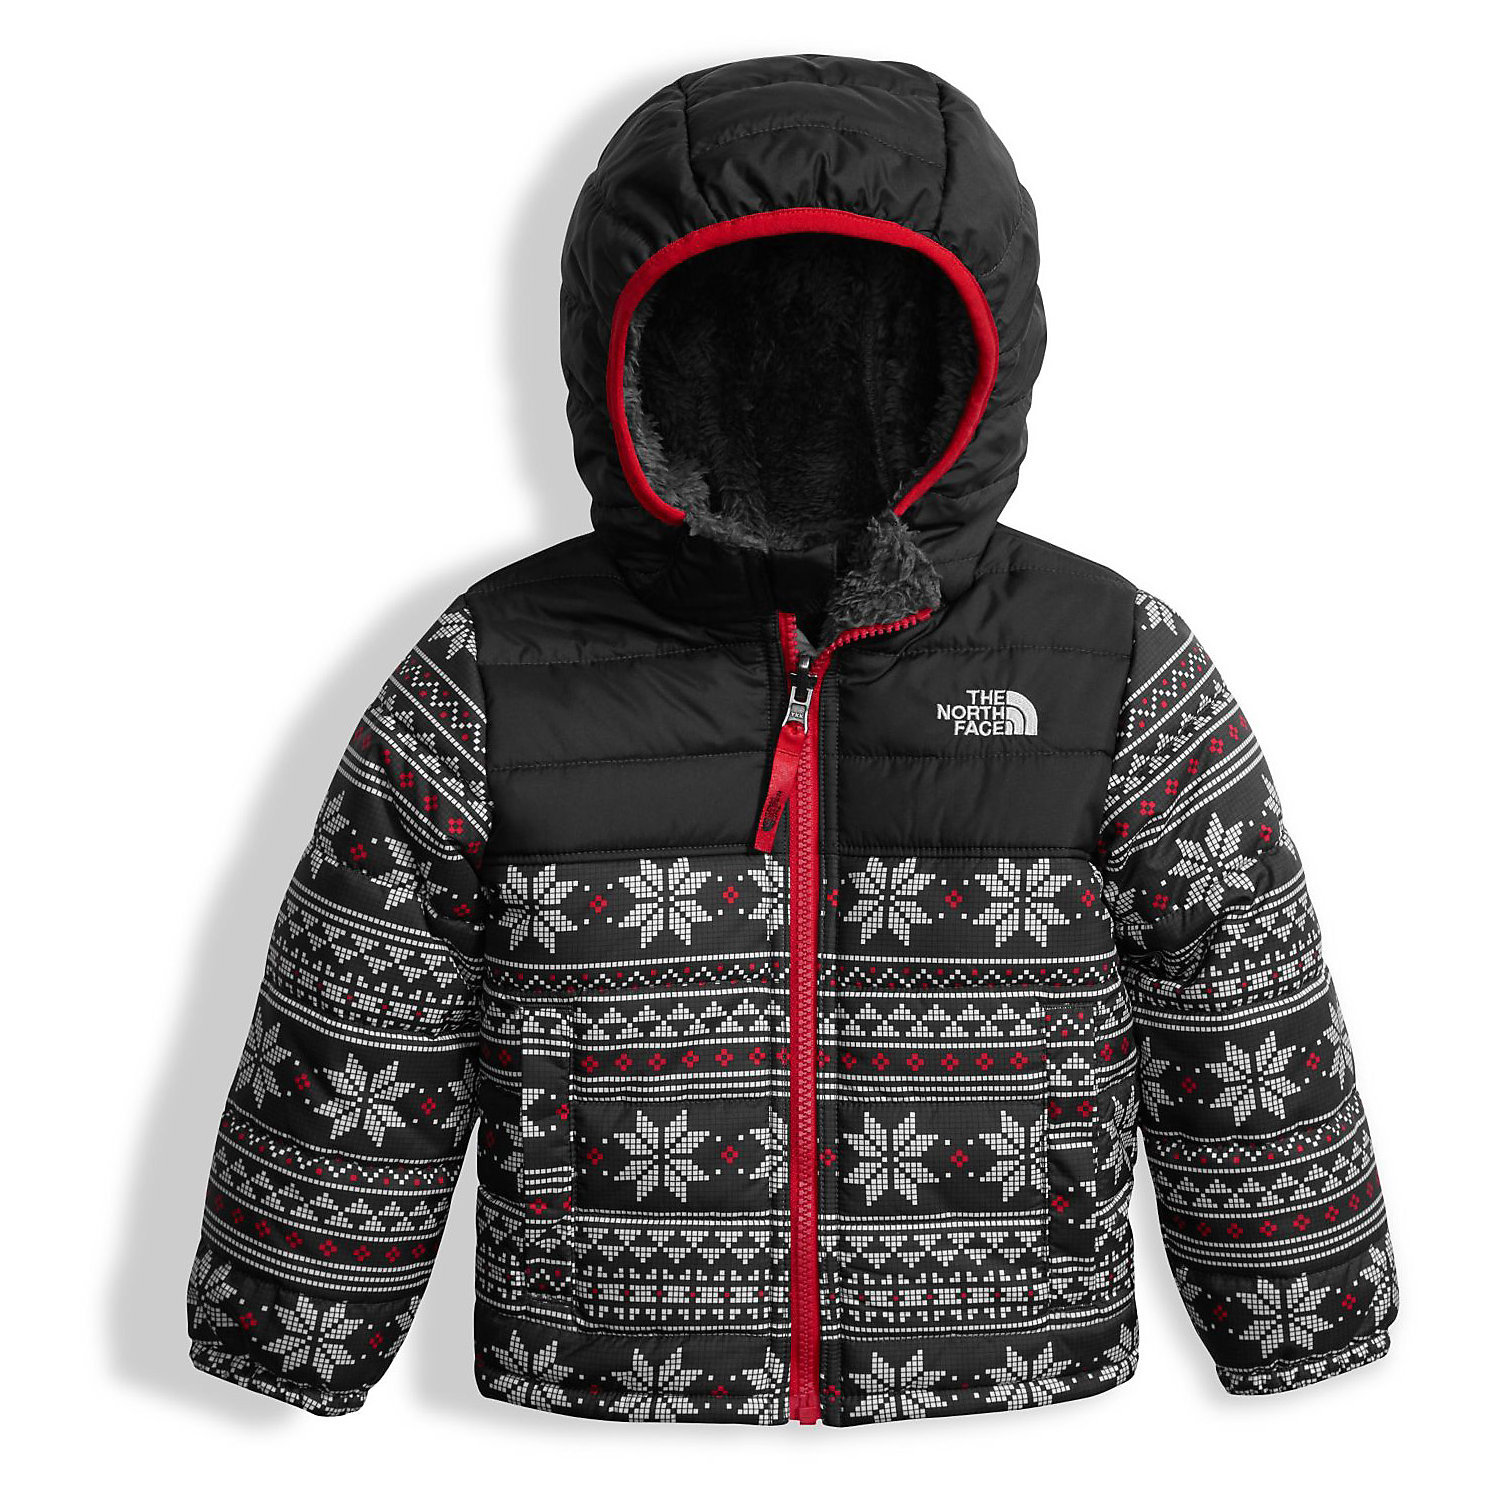 01623c0d2ad1 The North Face Toddler Boys  Reversible Mount Chimborazo Hoodie ...